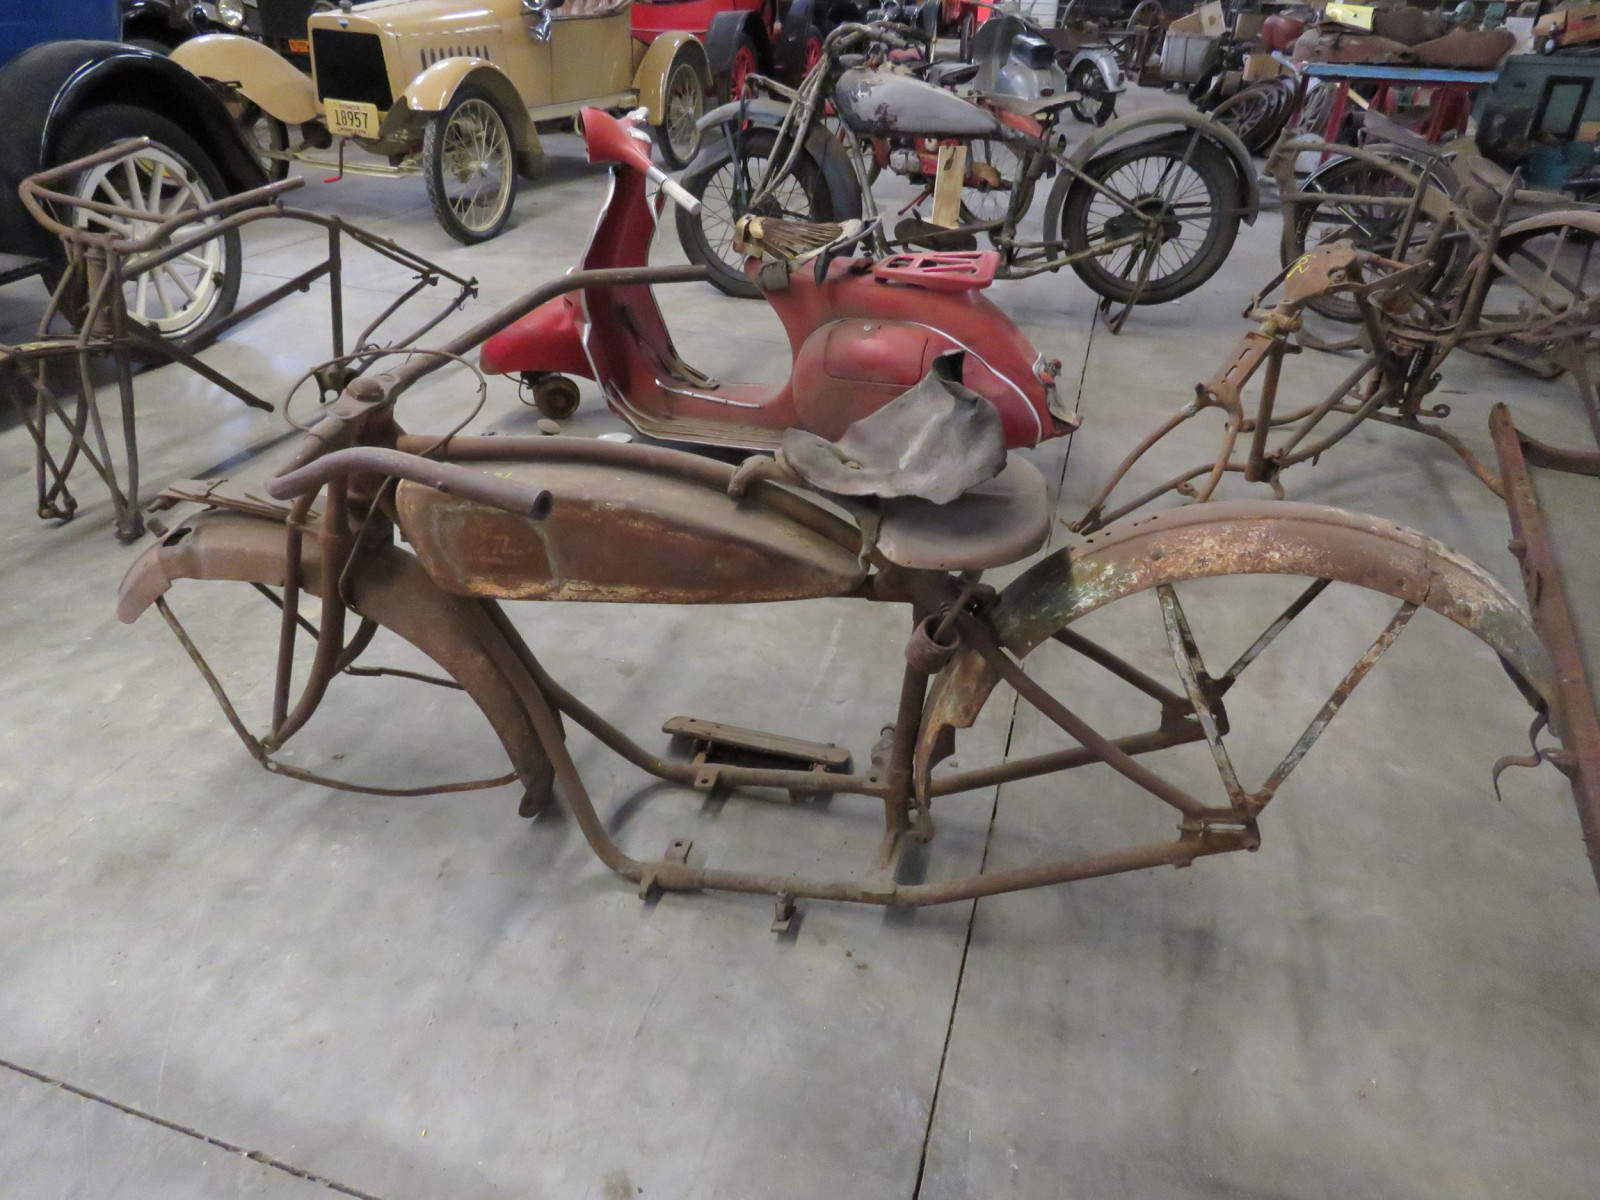 RARE 1920's Indian Motorcycle Project - Image 5